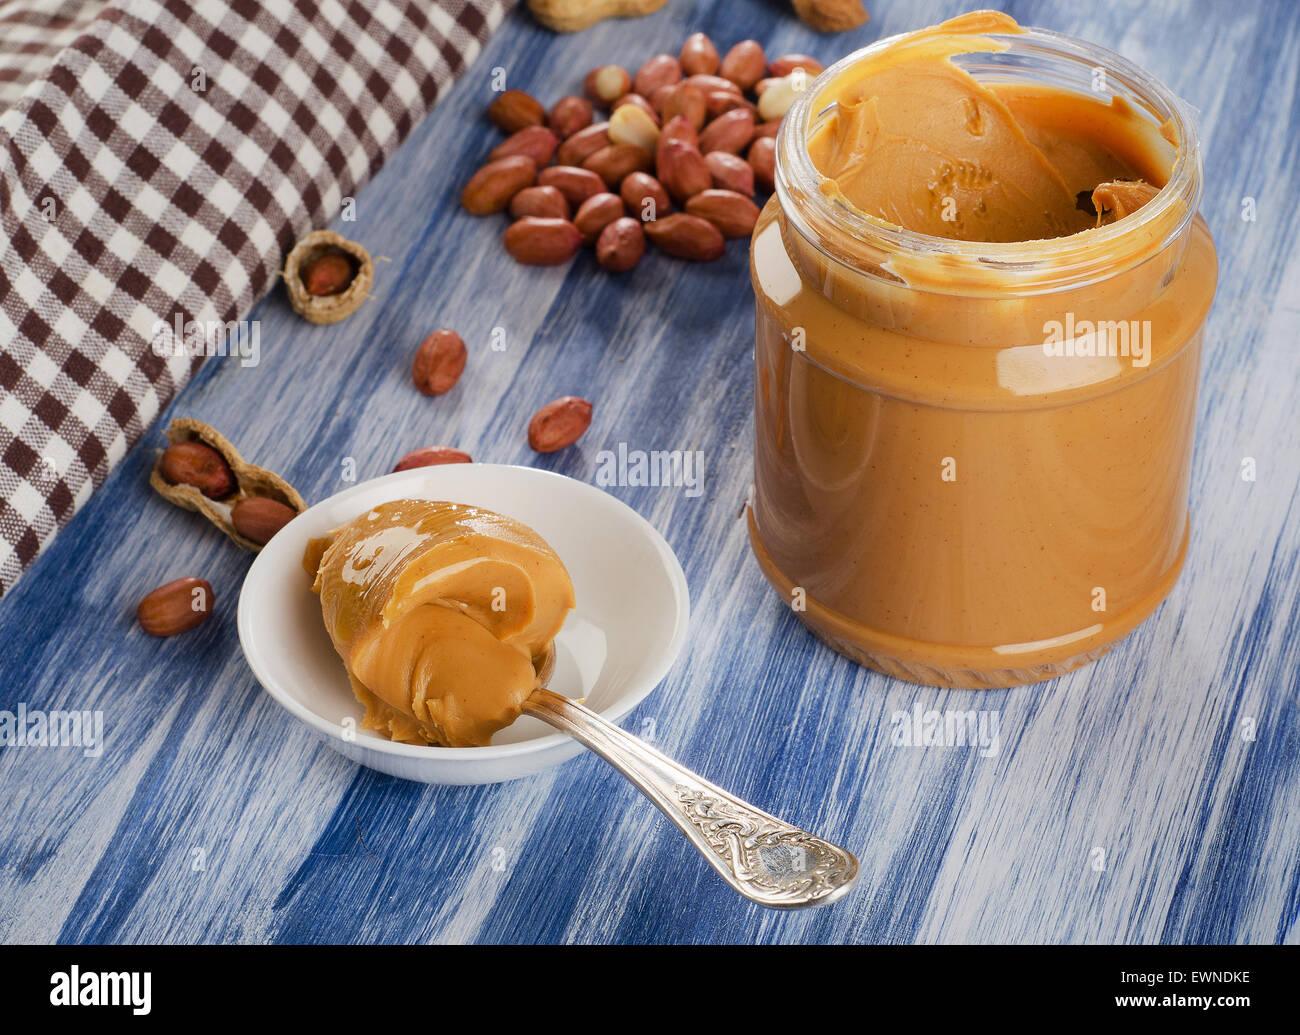 Peanut butter in  spoon  with peanuts.  Shallow dof. - Stock Image